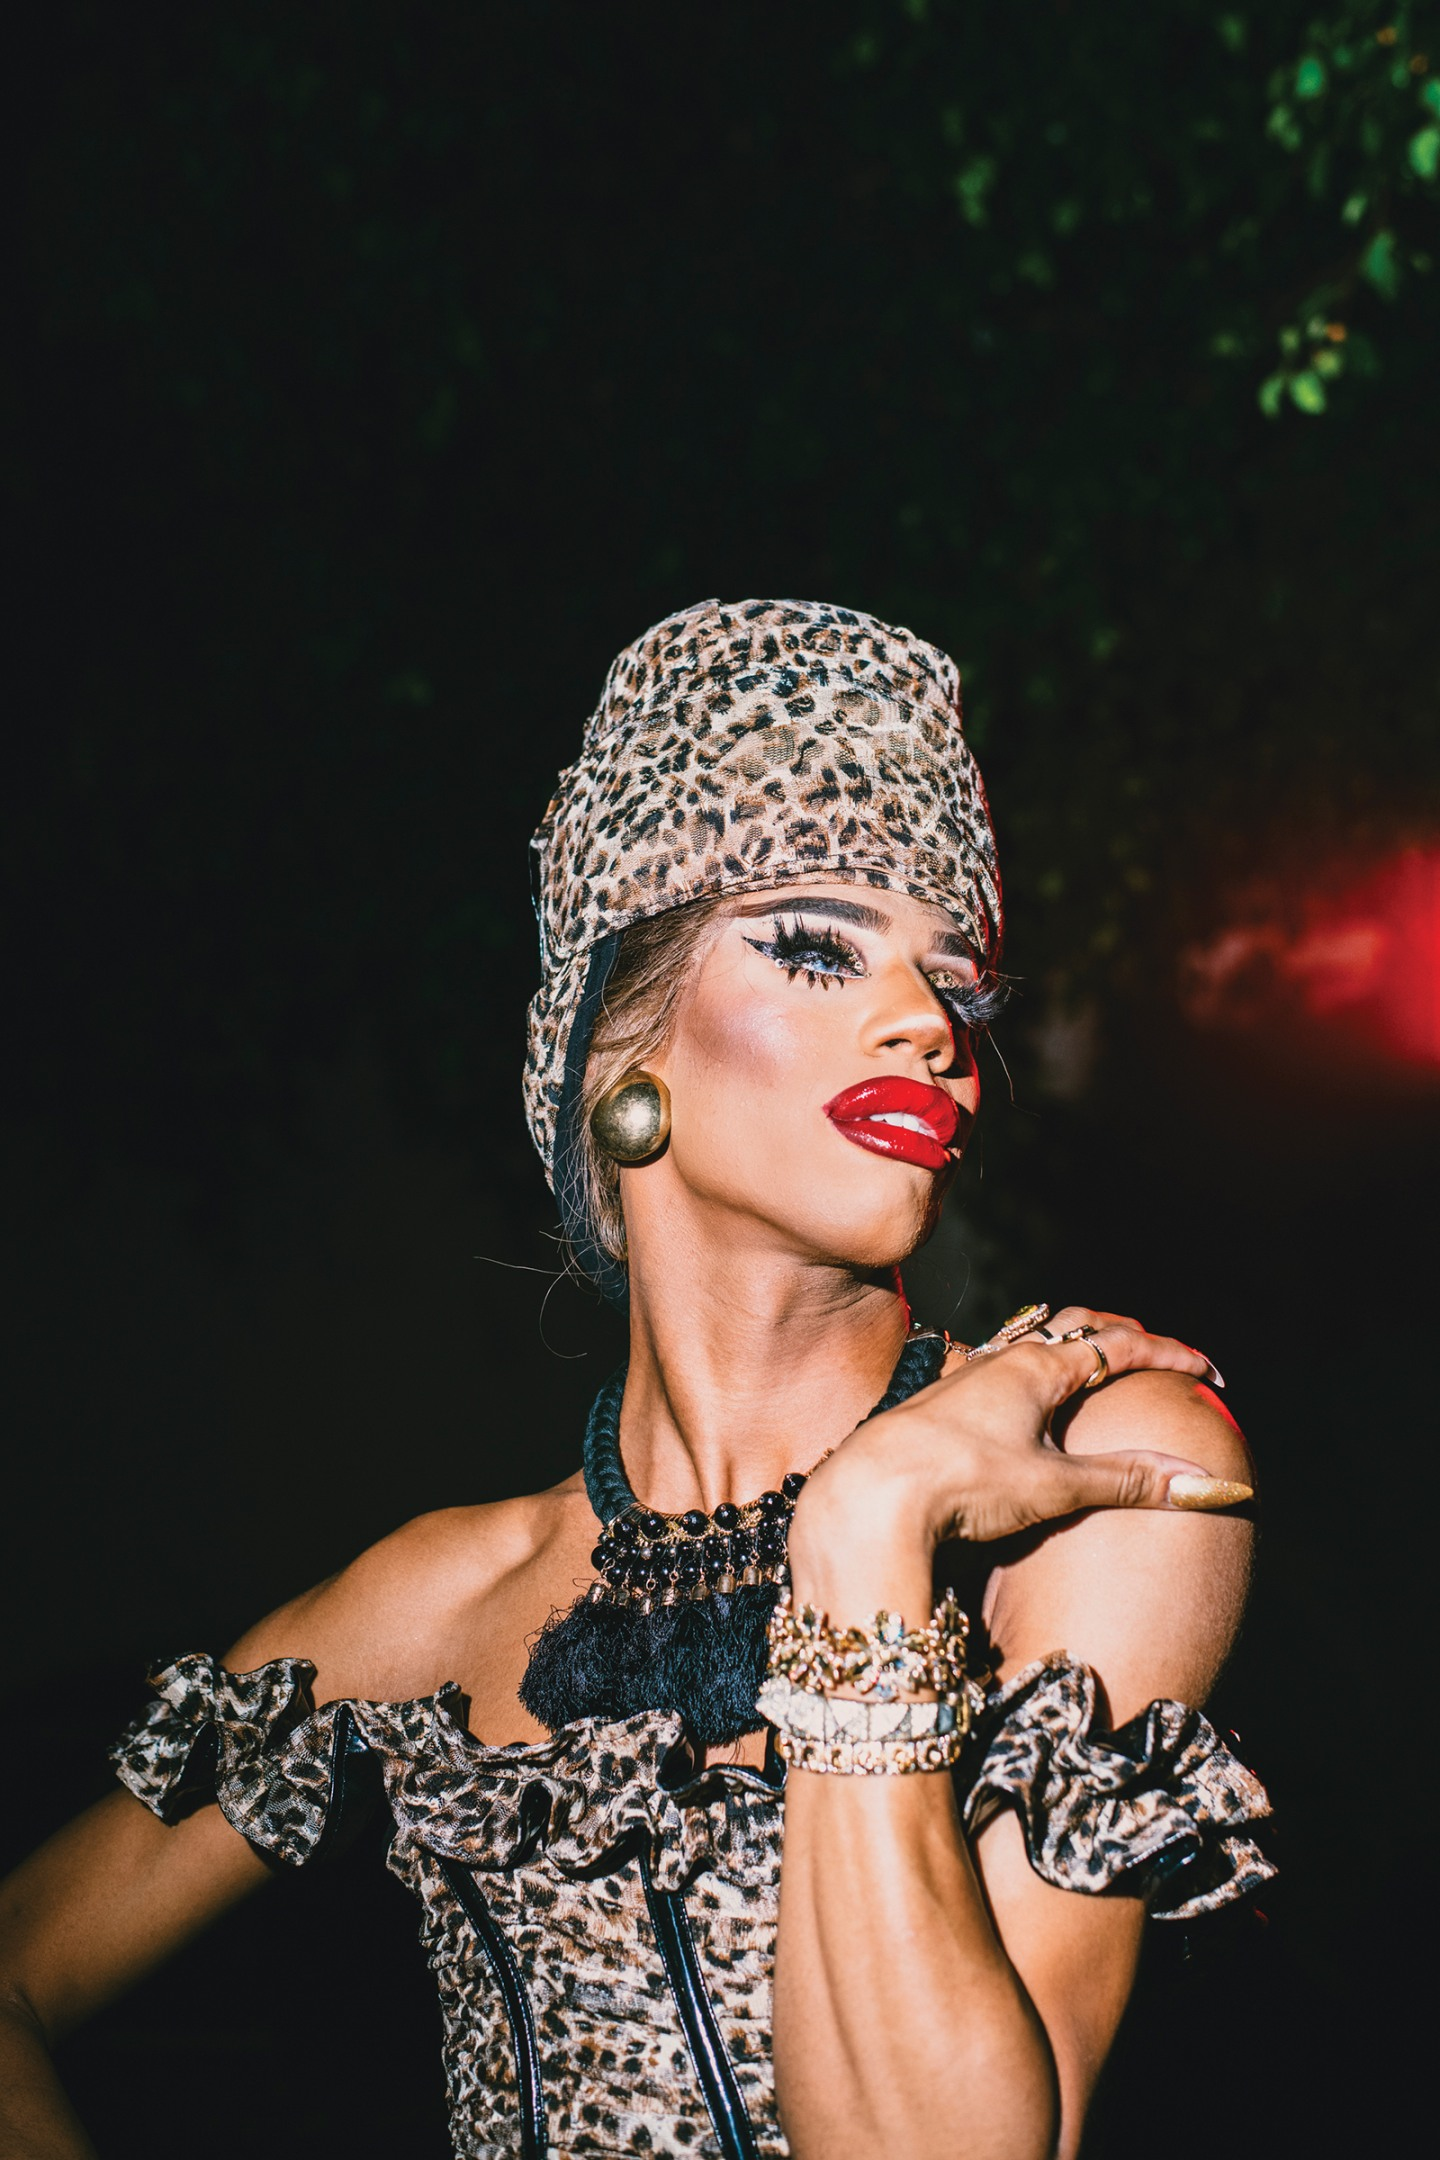 Why you should be rooting for Naomi Smalls in 2019